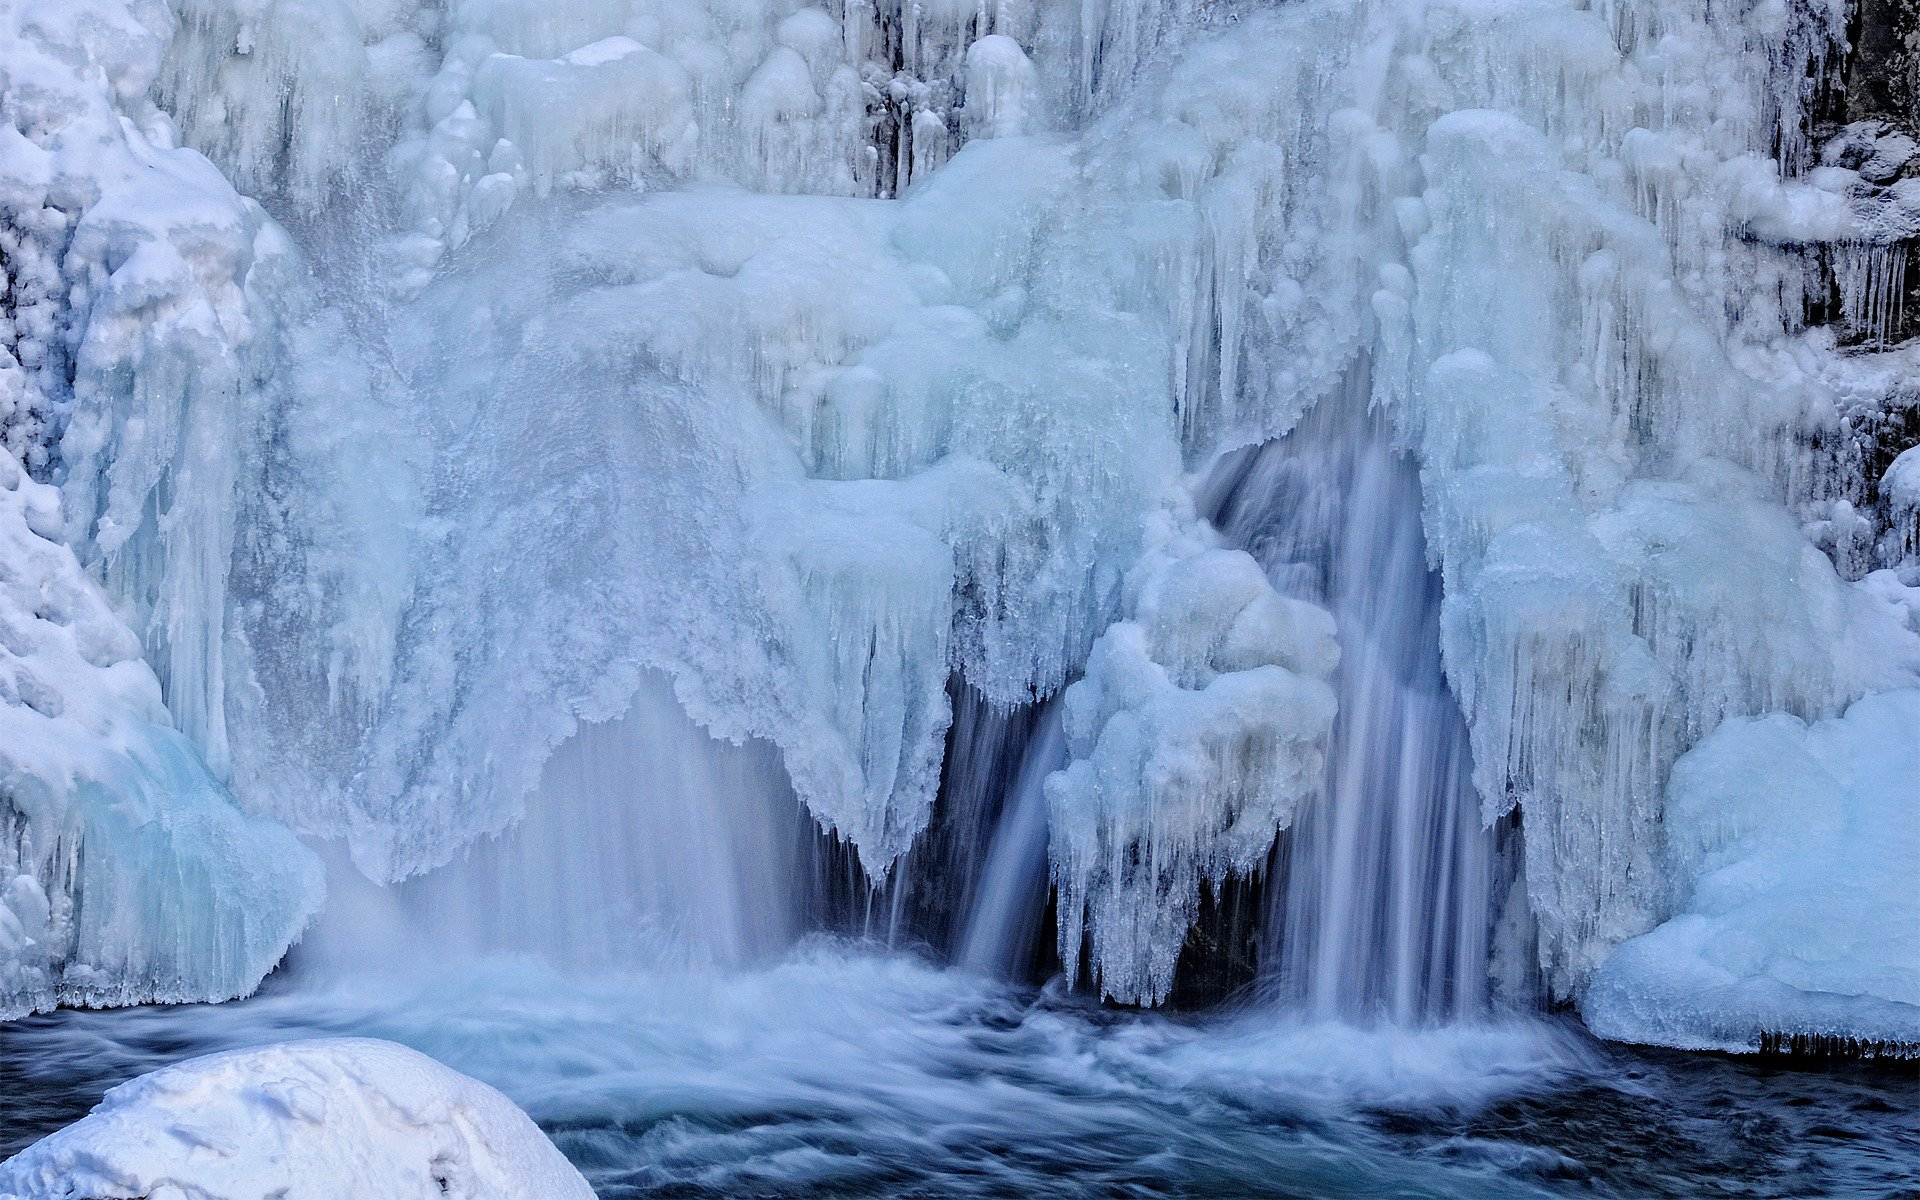 resolution wallpaper of waterfall picture of winter ice For Desktop 1920x1200